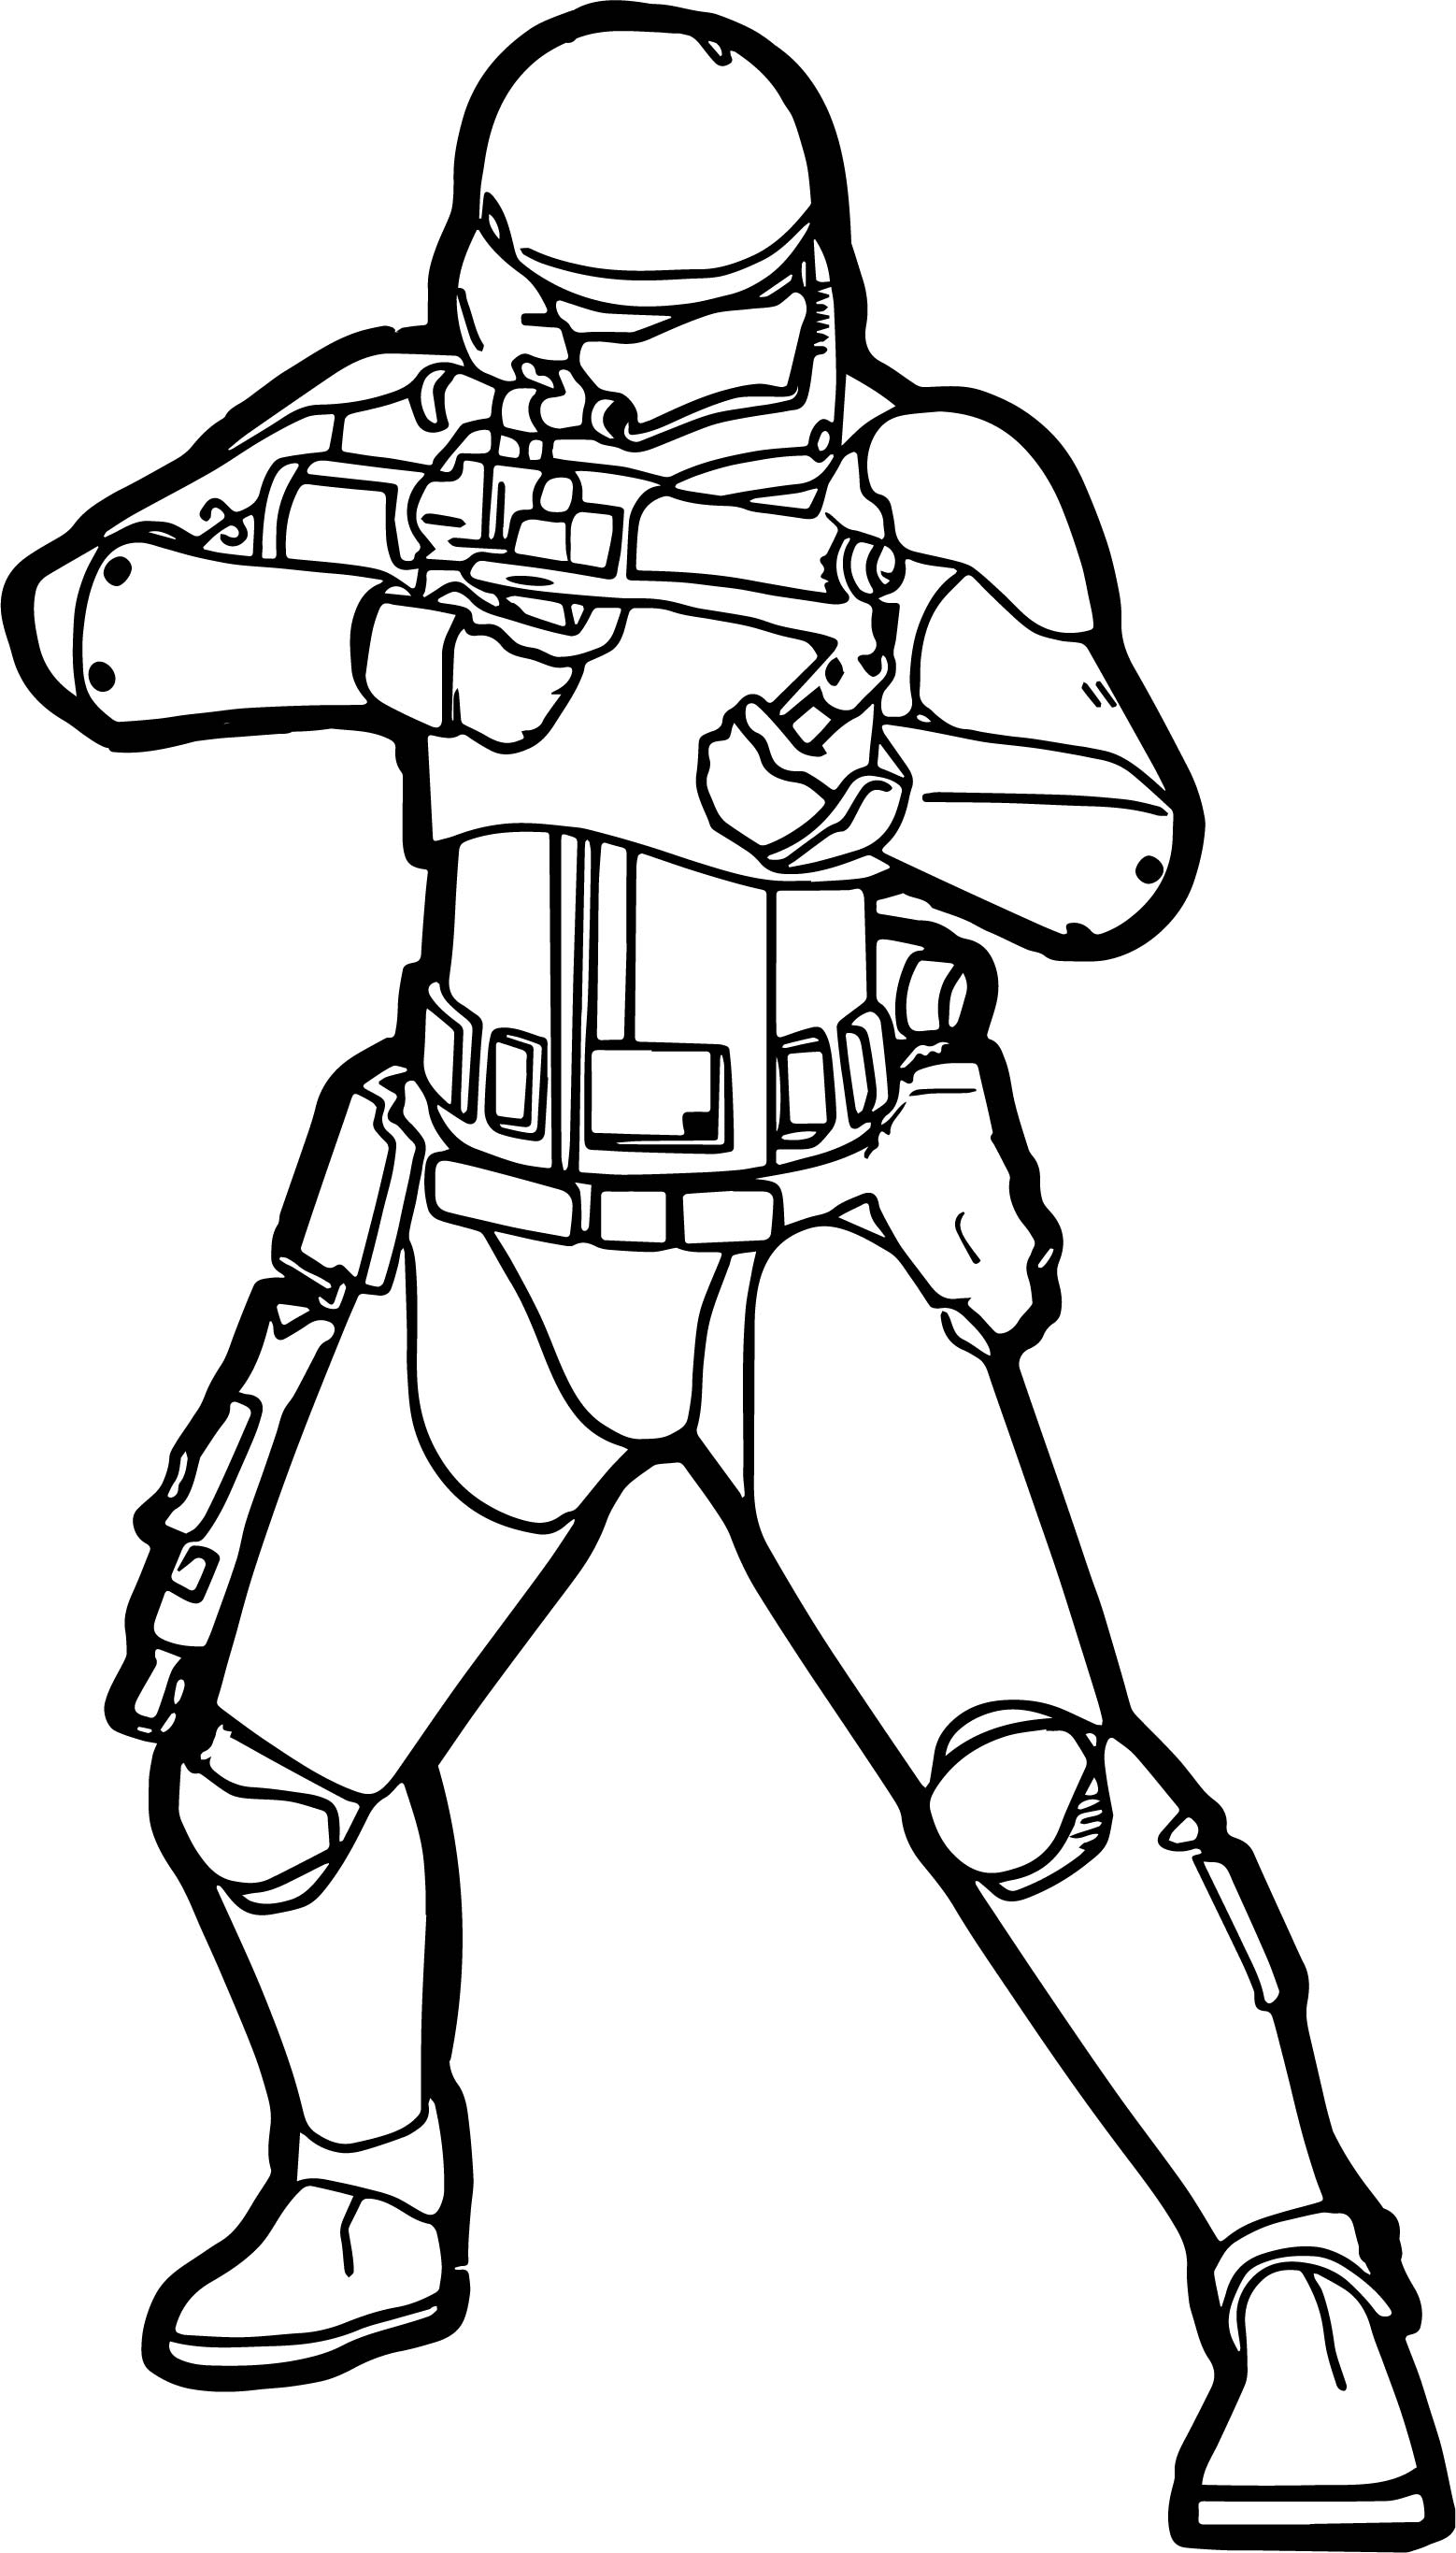 star wars free coloring pages free printable star wars coloring pages free printable wars star free coloring pages